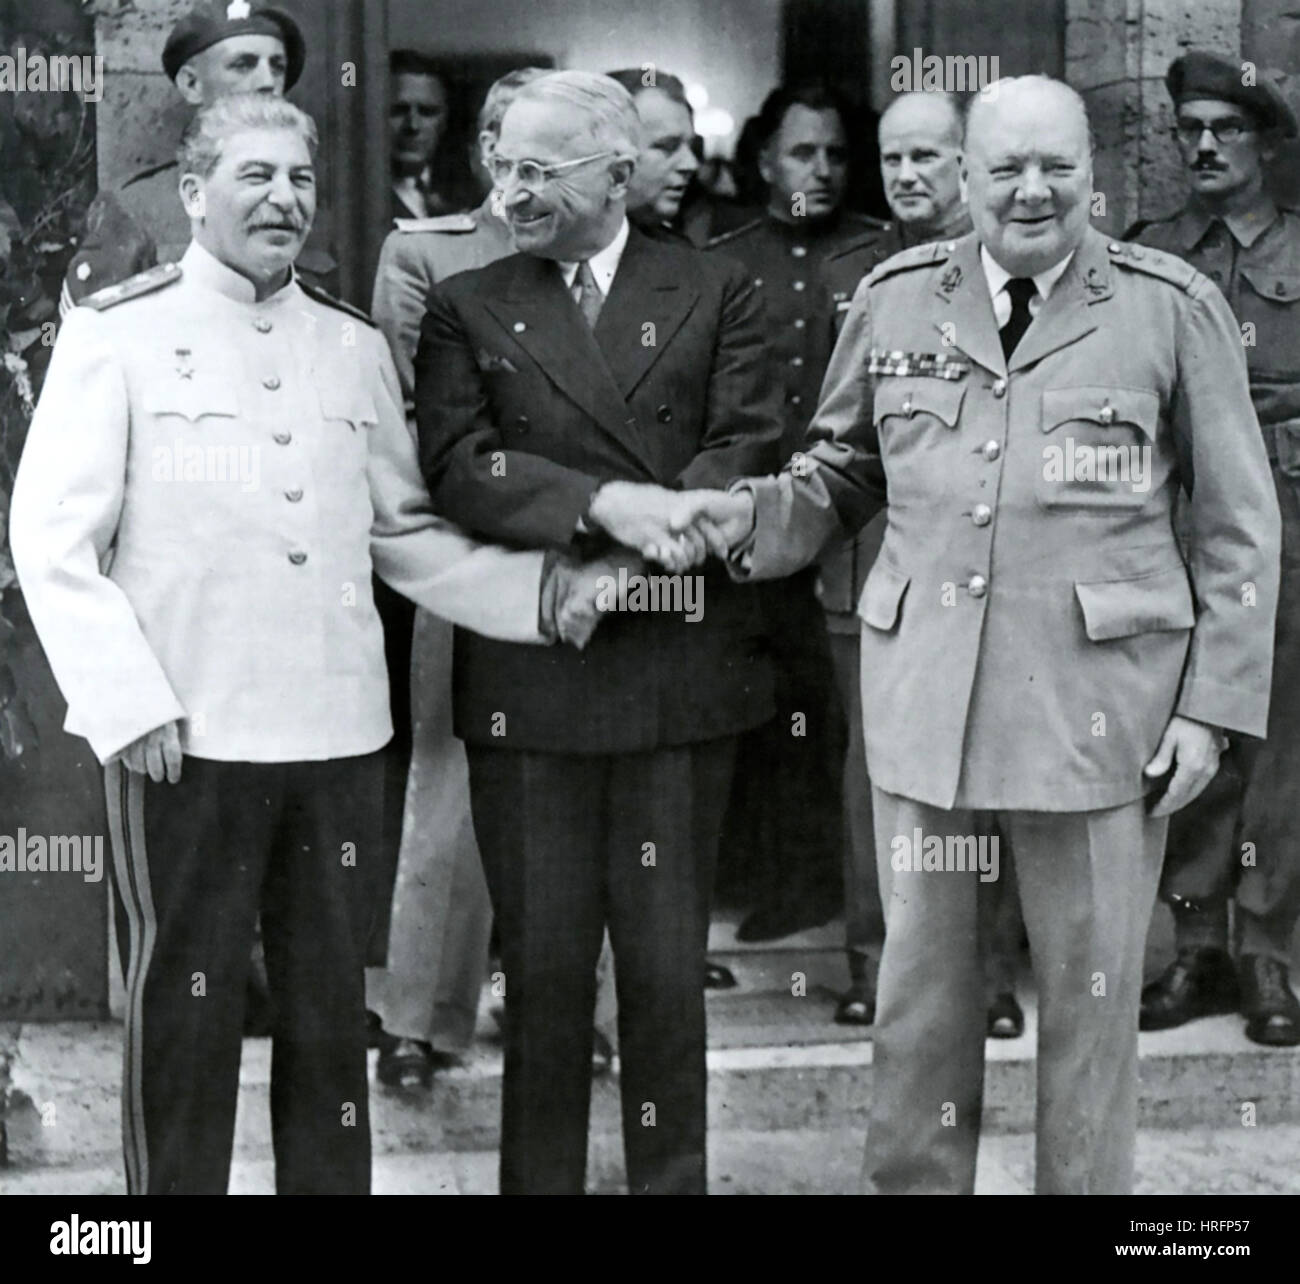 POTSDAM CONFERENCE 1945 From left: Joseph Stalin, Harry Truman, Winston Churchill - Stock Image